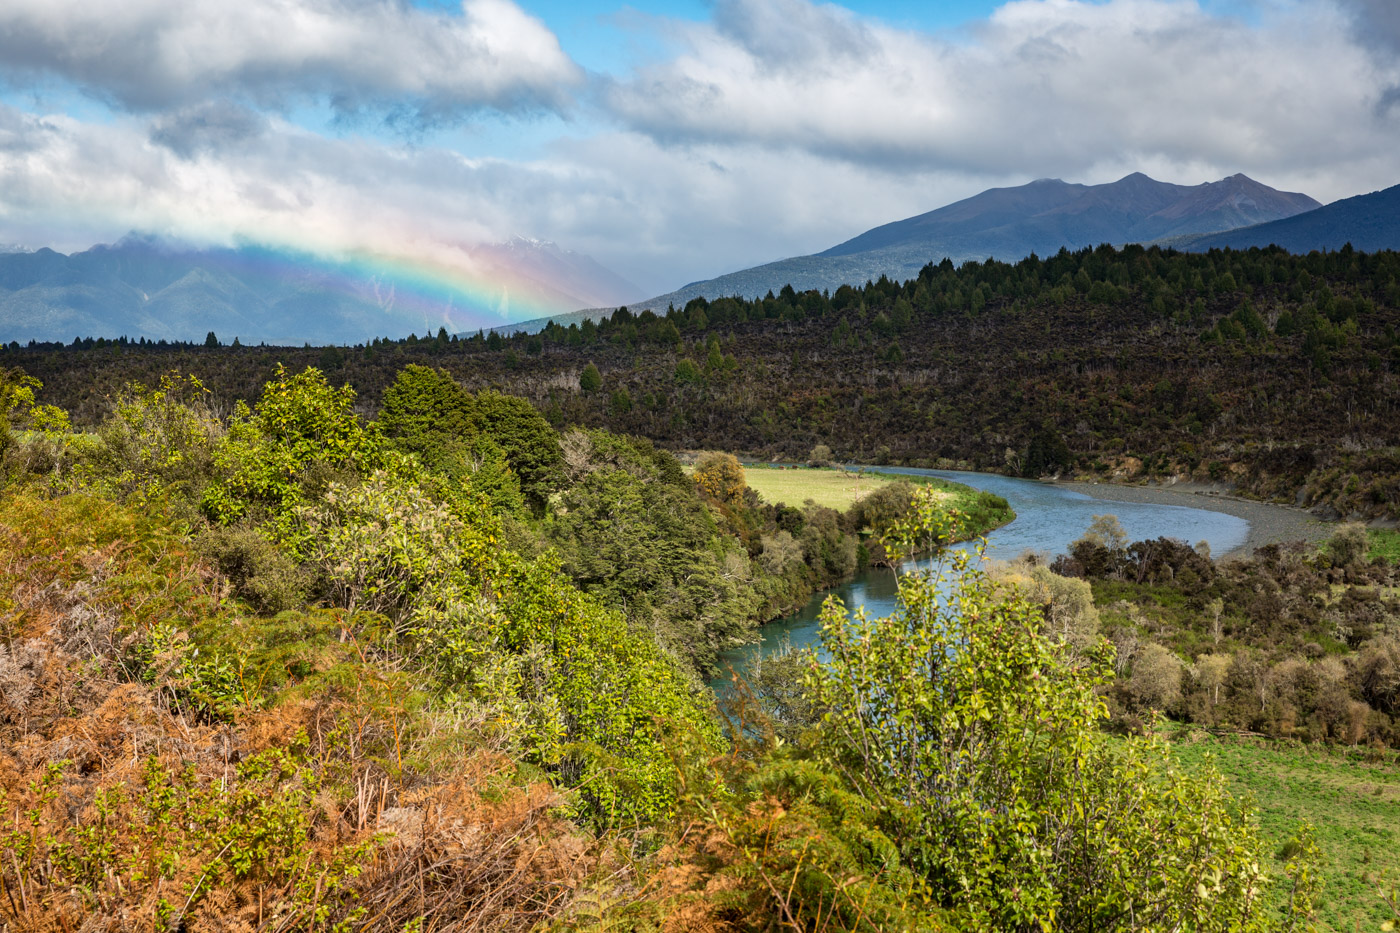 On the road from Te Anau to Milford Sound, South Island, New Zealand